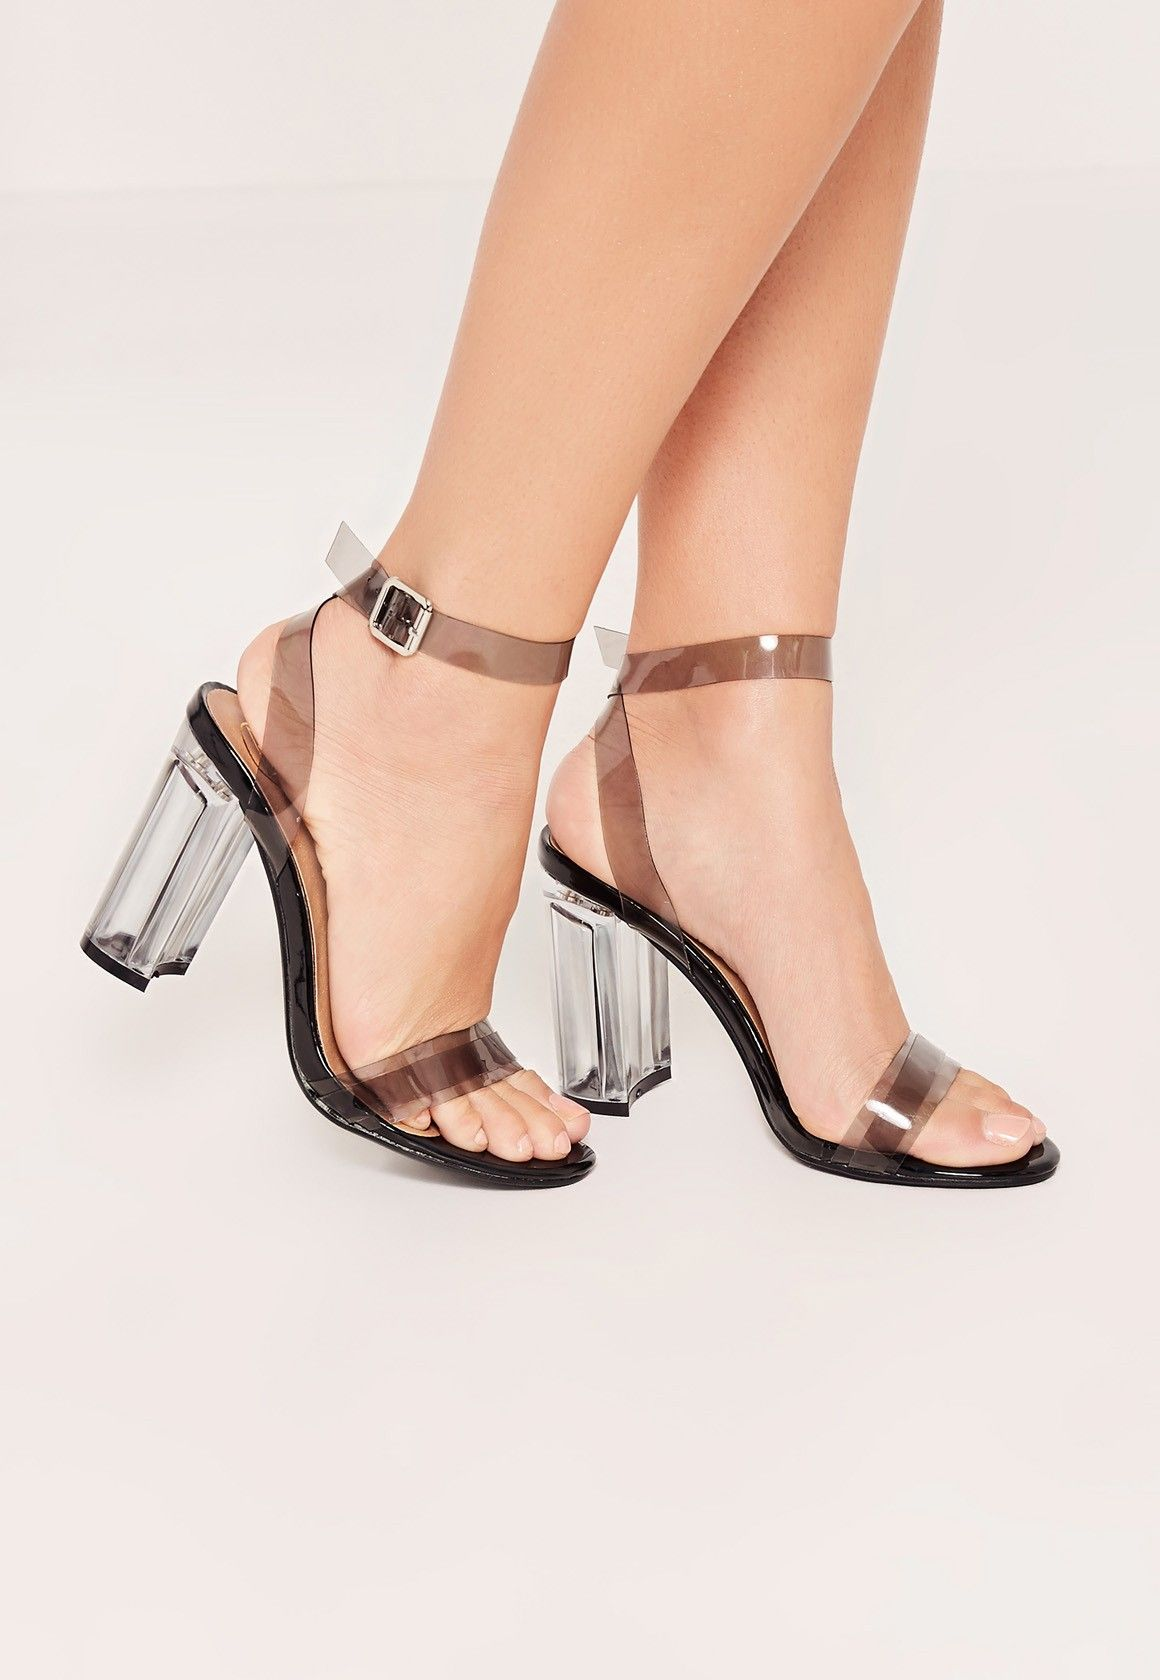 4d44e2faad Missguided - Black Perspex Block Heel Barely There Sandals | shoes ...